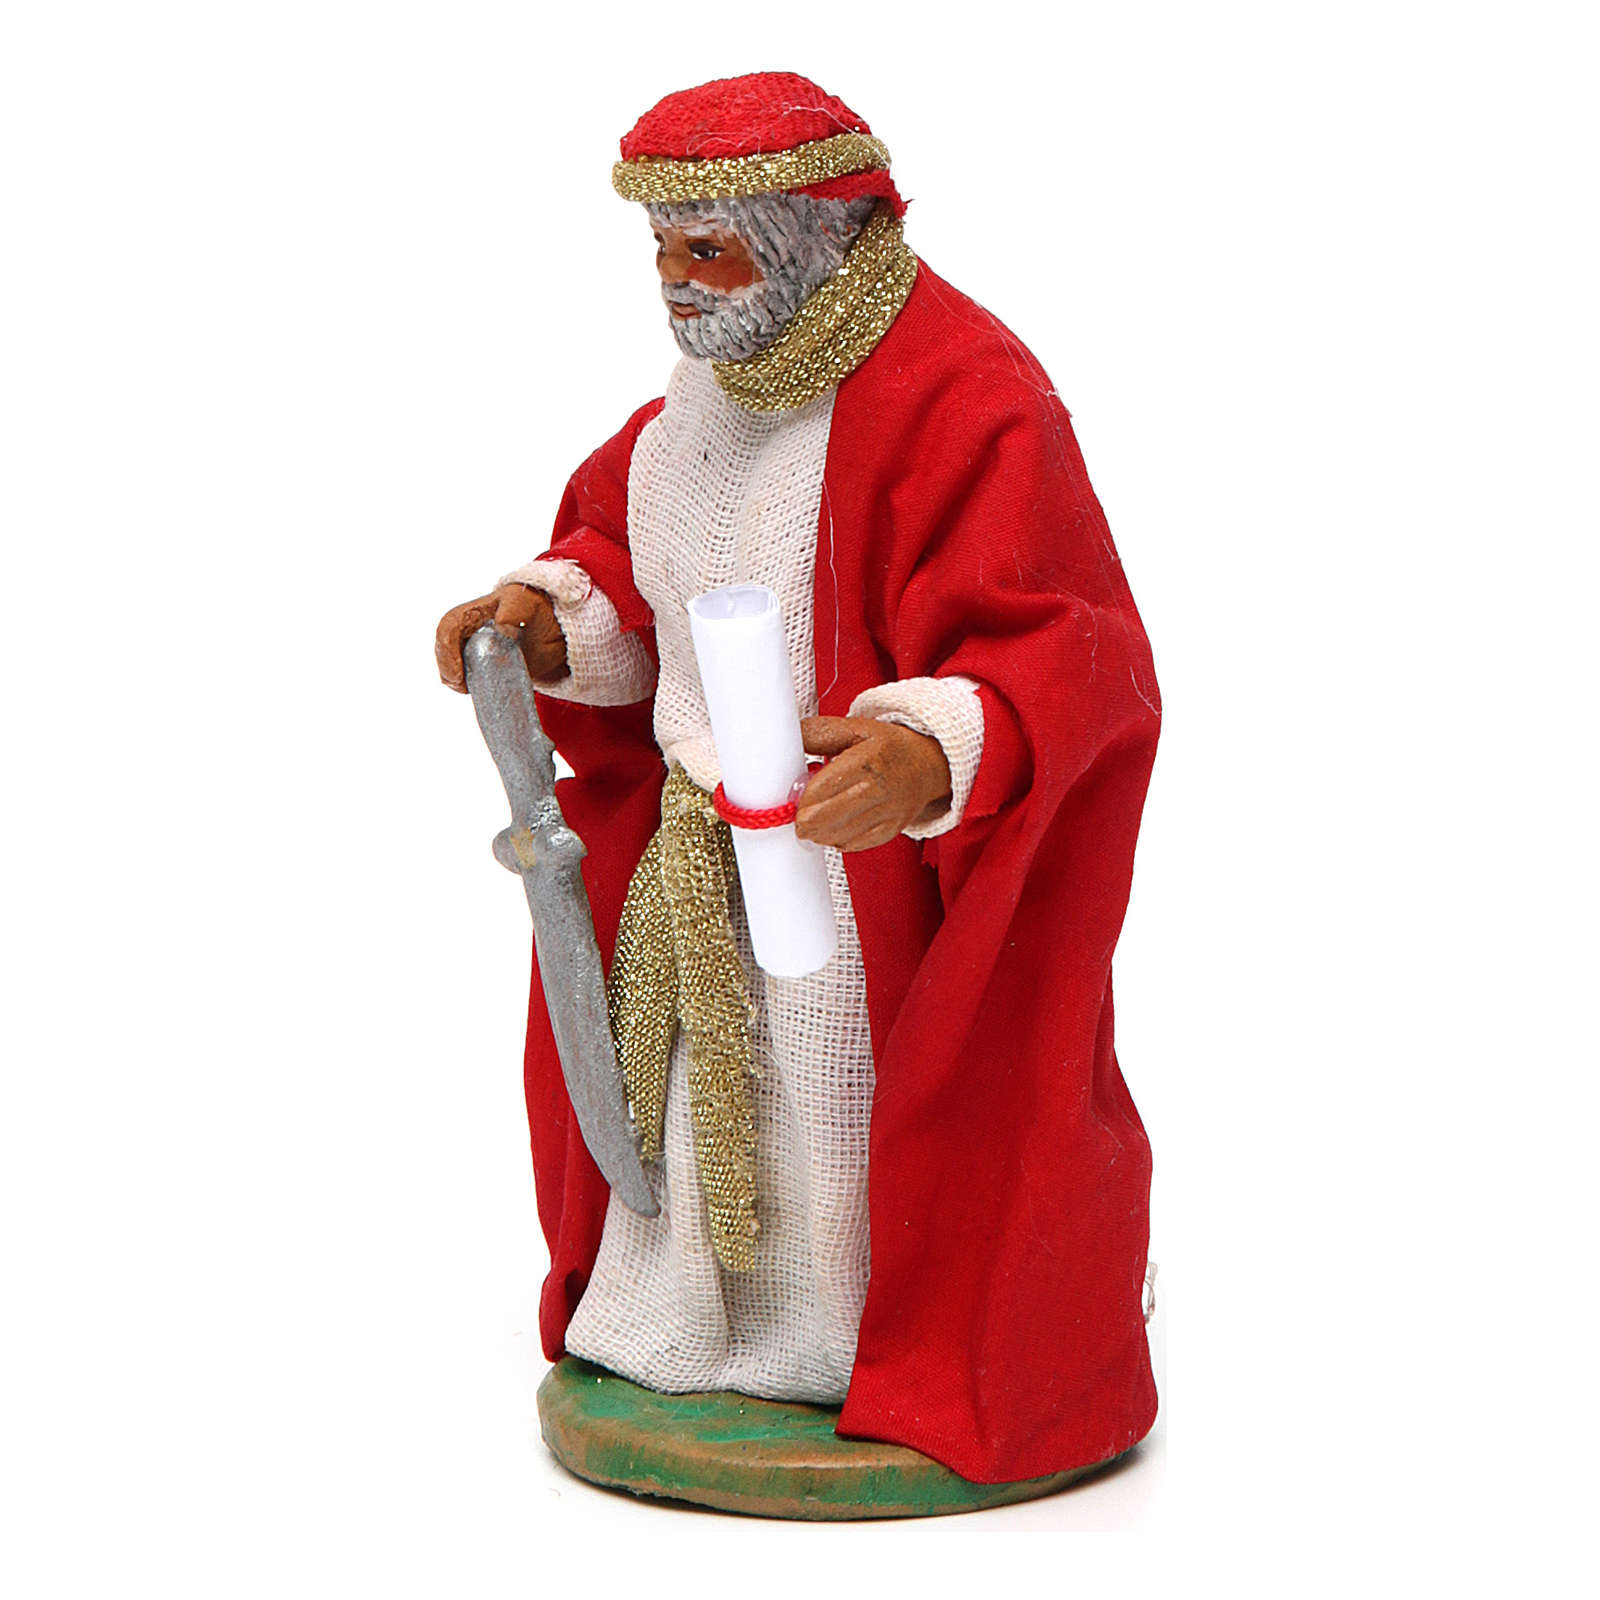 King Herod 10cm Neapolitan Nativity figurine 4